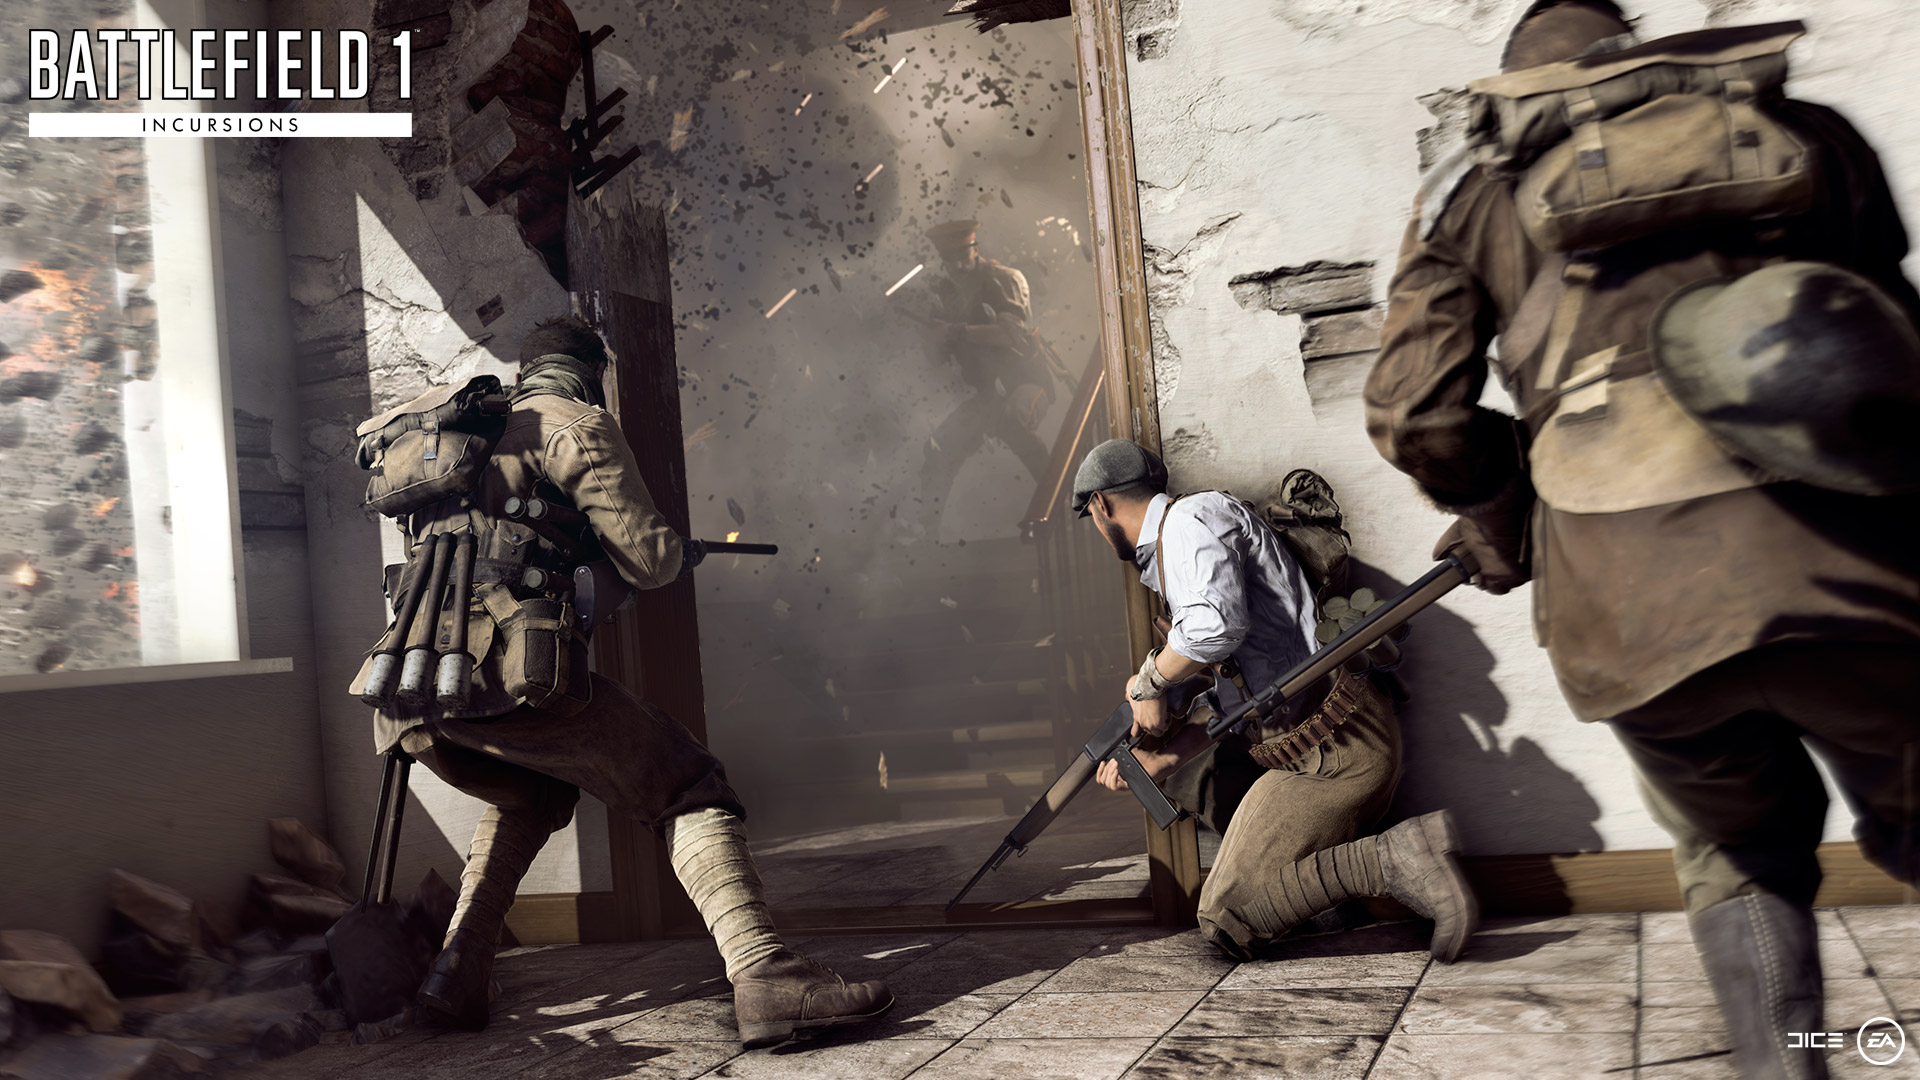 https://content.pulse.ea.com/content/legacy/battlefield-portal/de_DE/news/battlefield-1/play-battlefield-1-incursions-on-pc-and-console-today/_jcr_content/body/image/renditions/rendition1.img.jpg